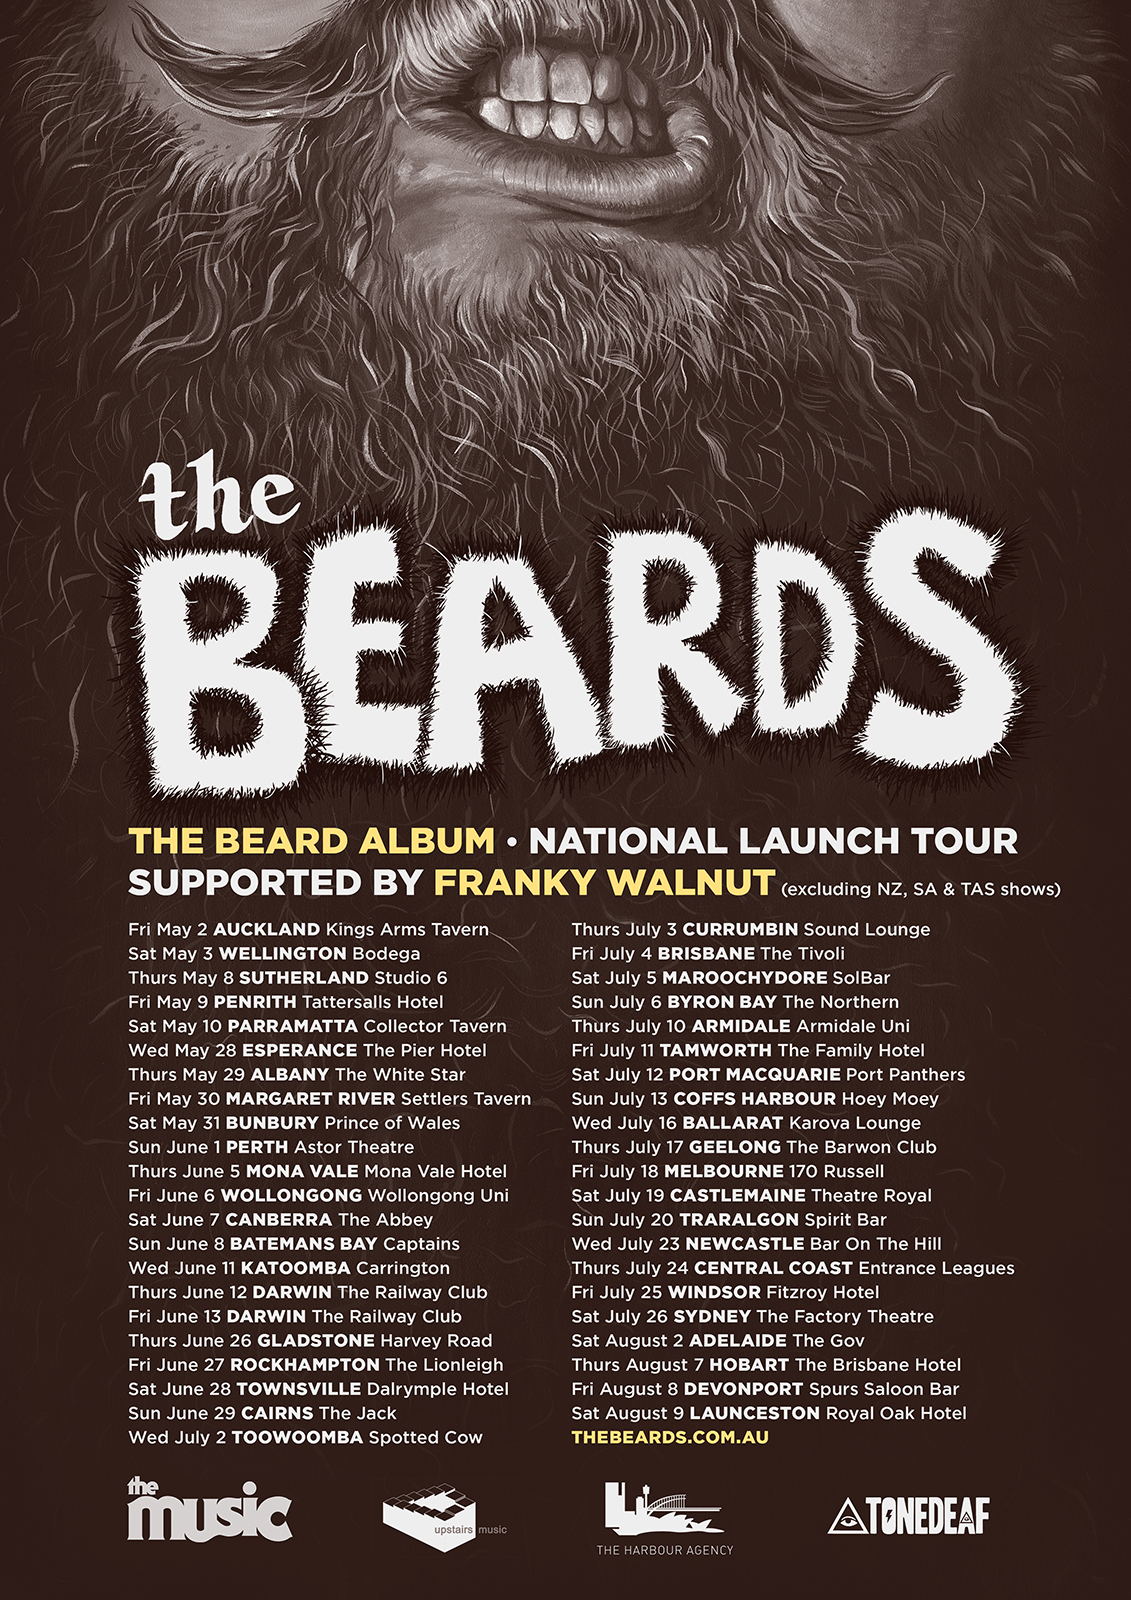 2014 TOUR LAUNCH POSTER_THE BEARD ALBUM_web image_all dates